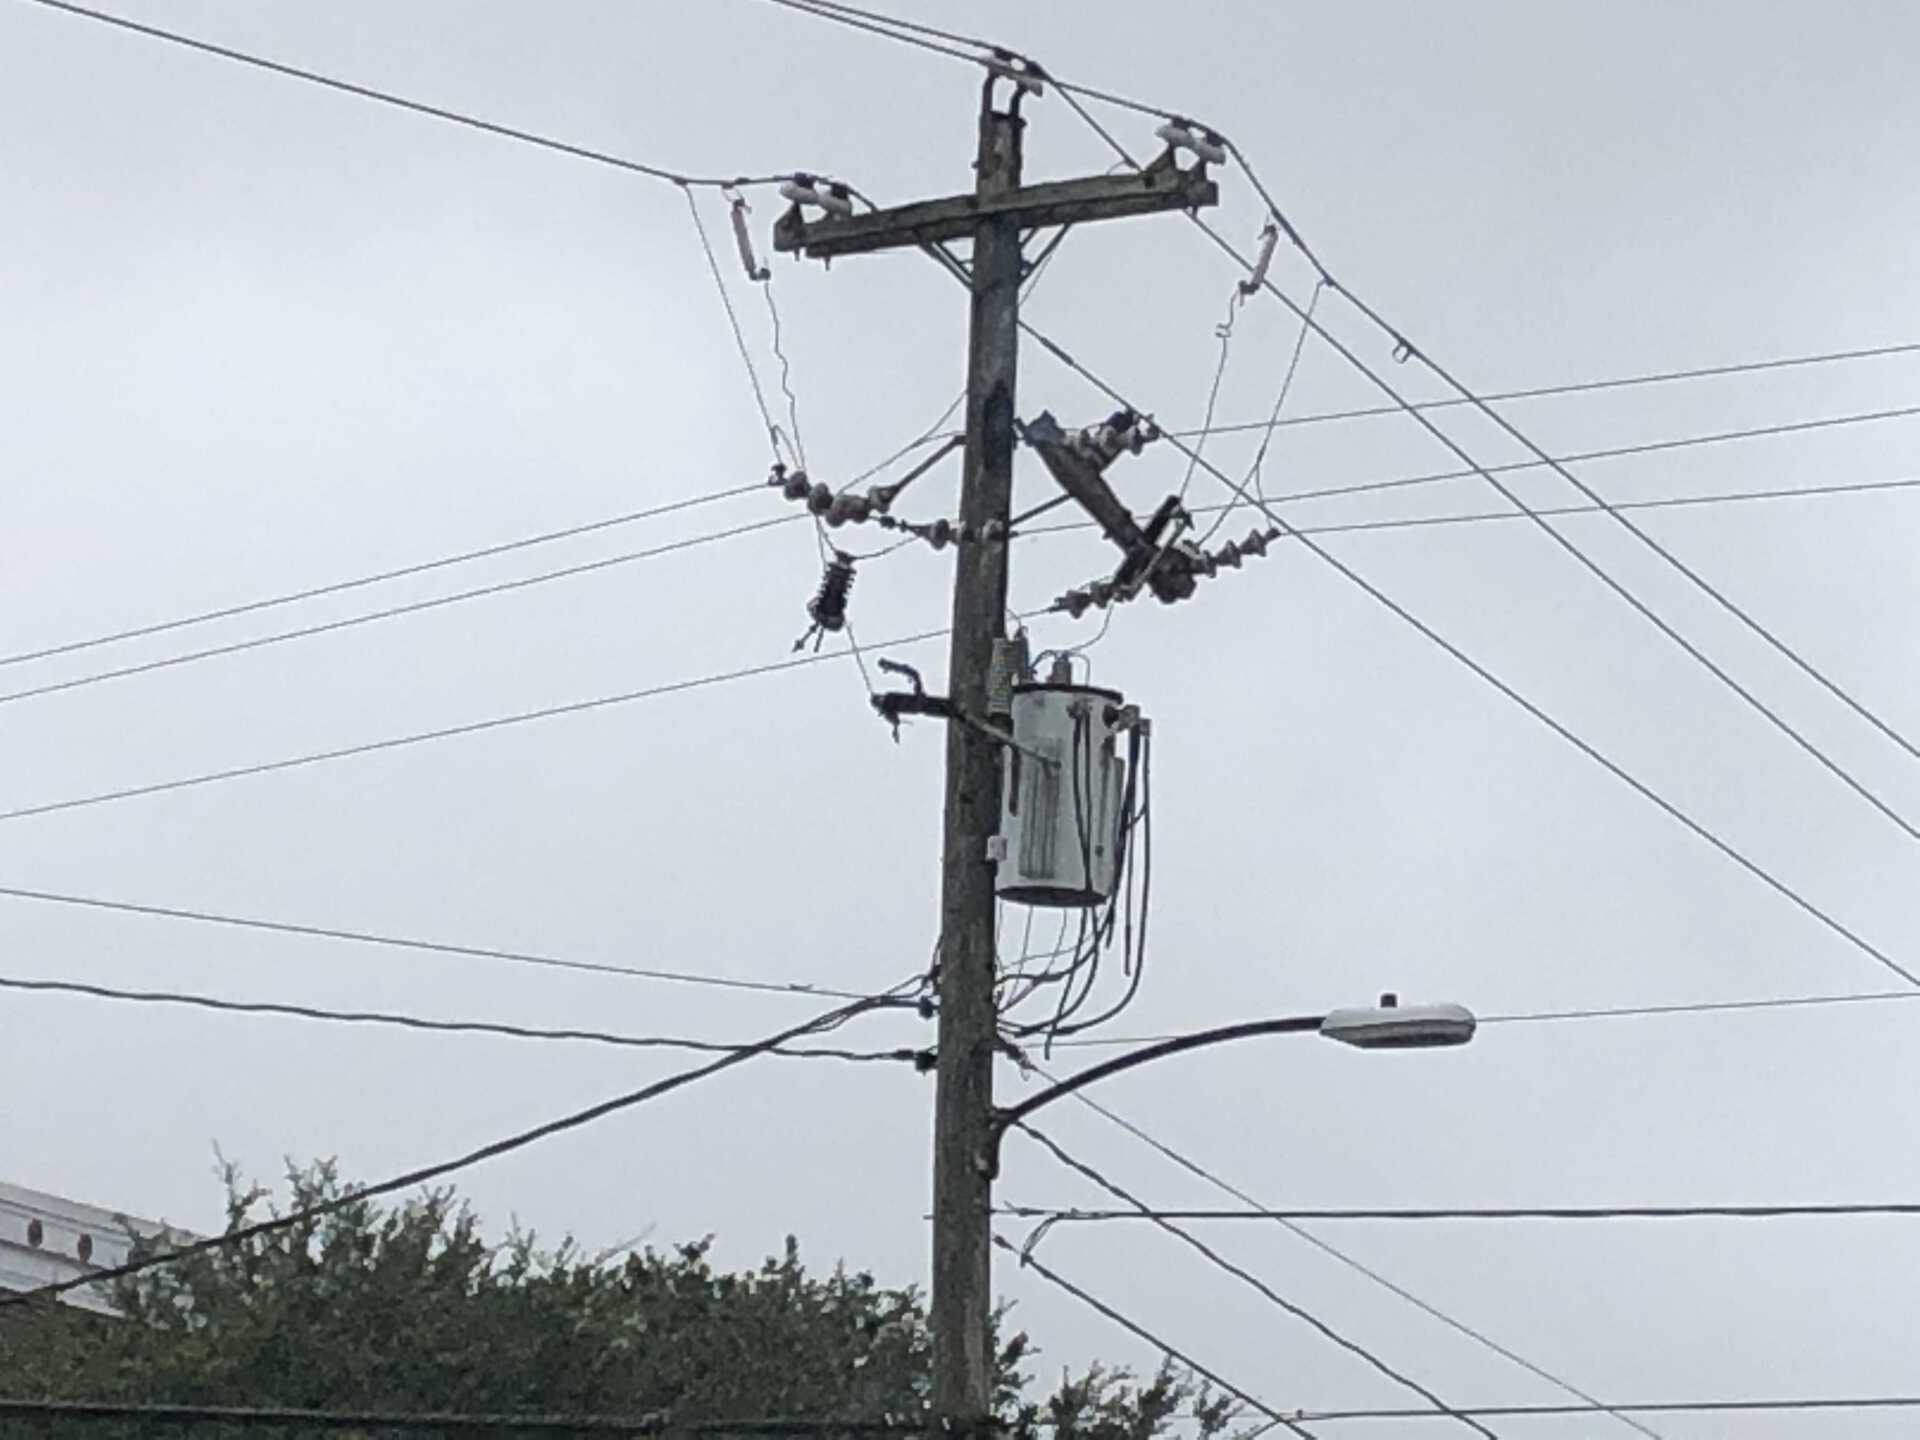 Photos: Salt contamination, rain leads to fires causing thousands to lose power in HamptonRoads